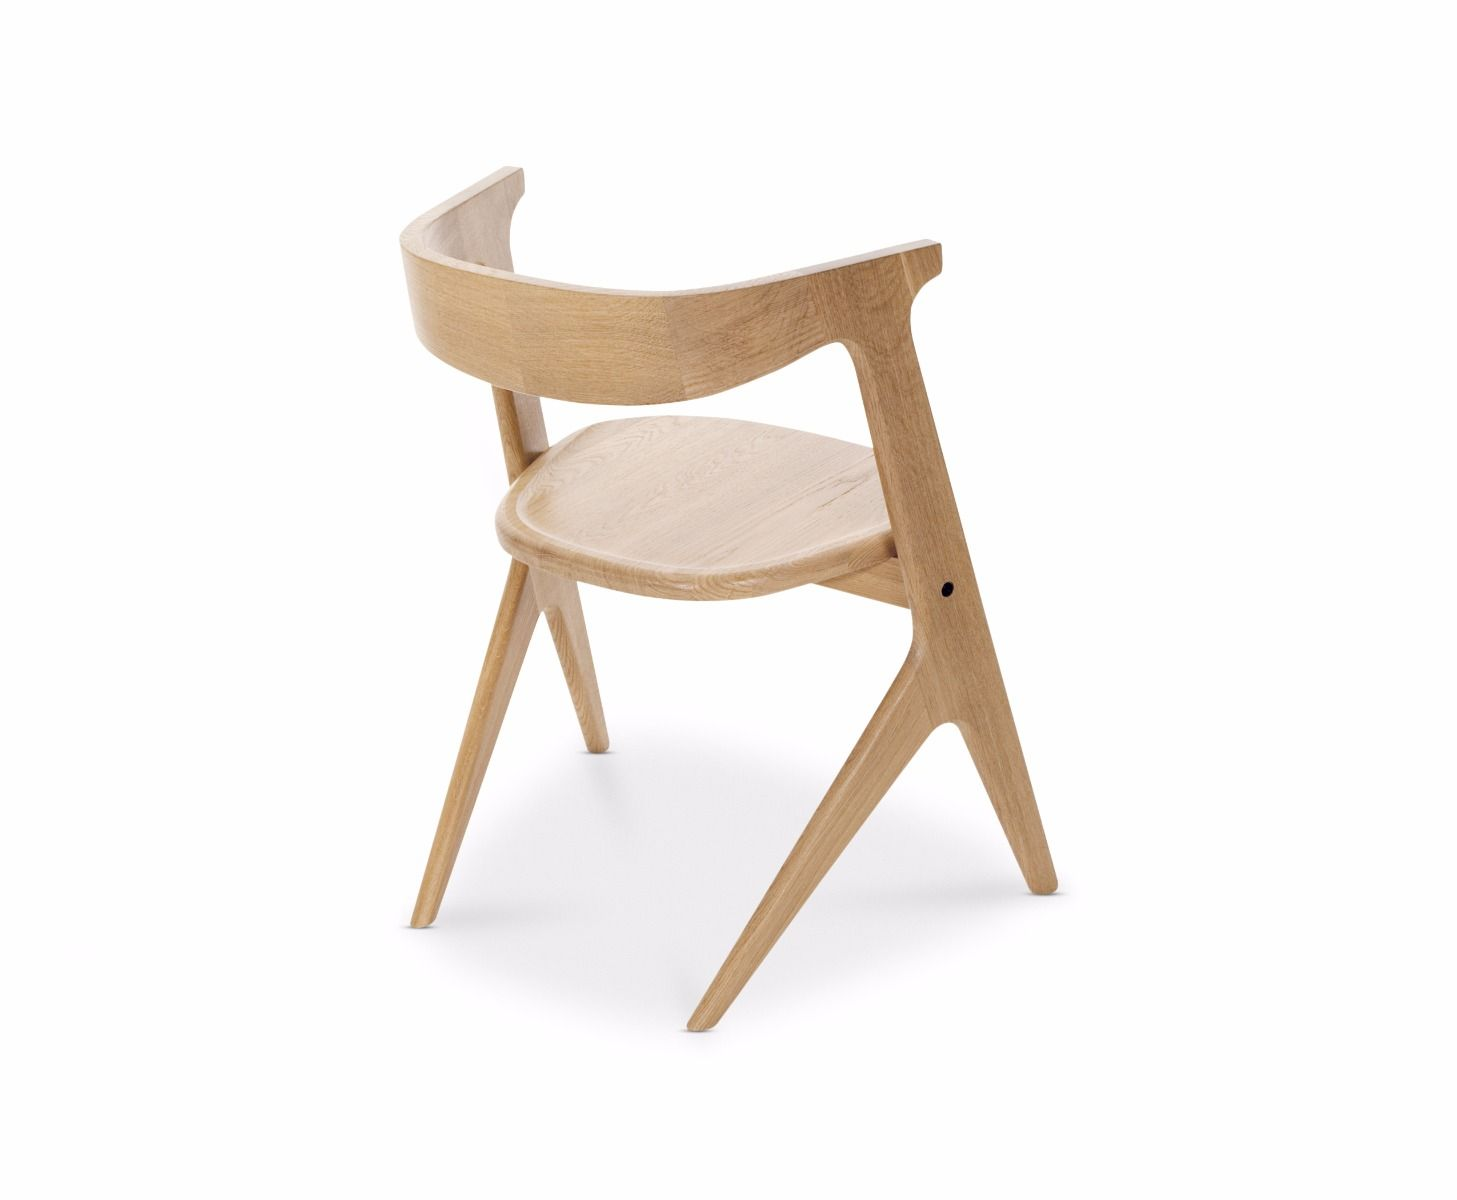 slabchair_natural_cutout.jpg